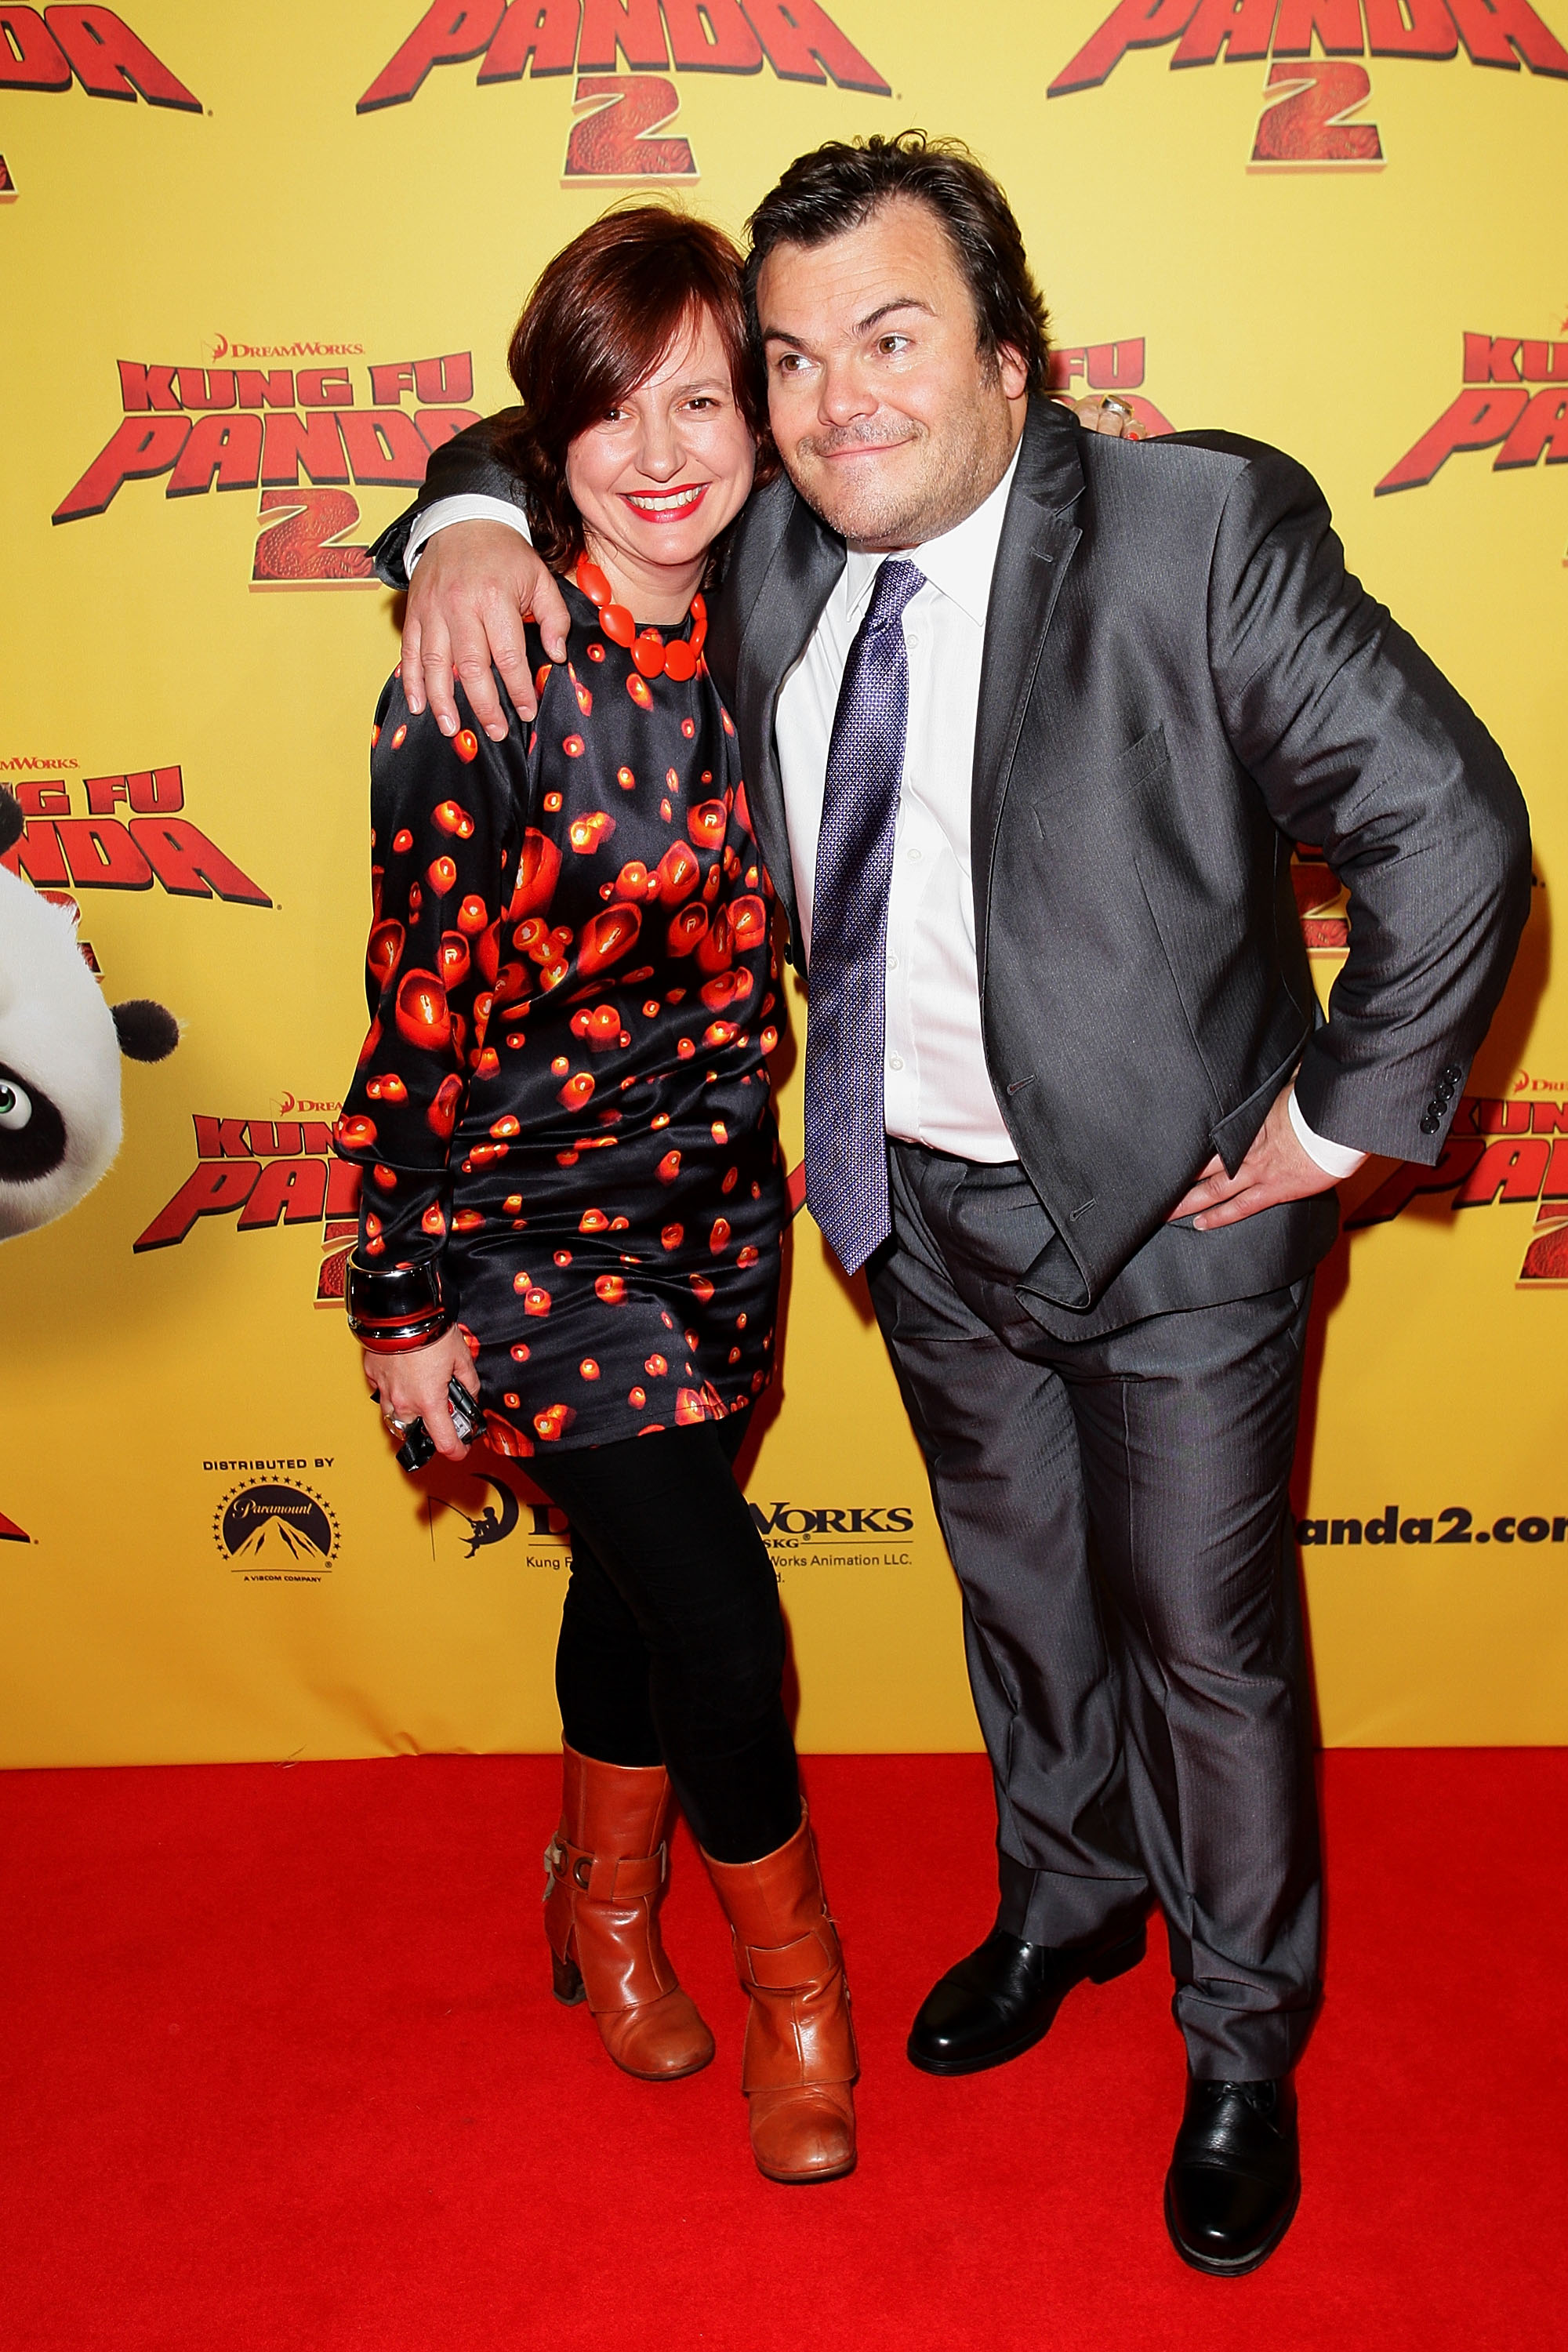 Claire Stewart and Jack Black